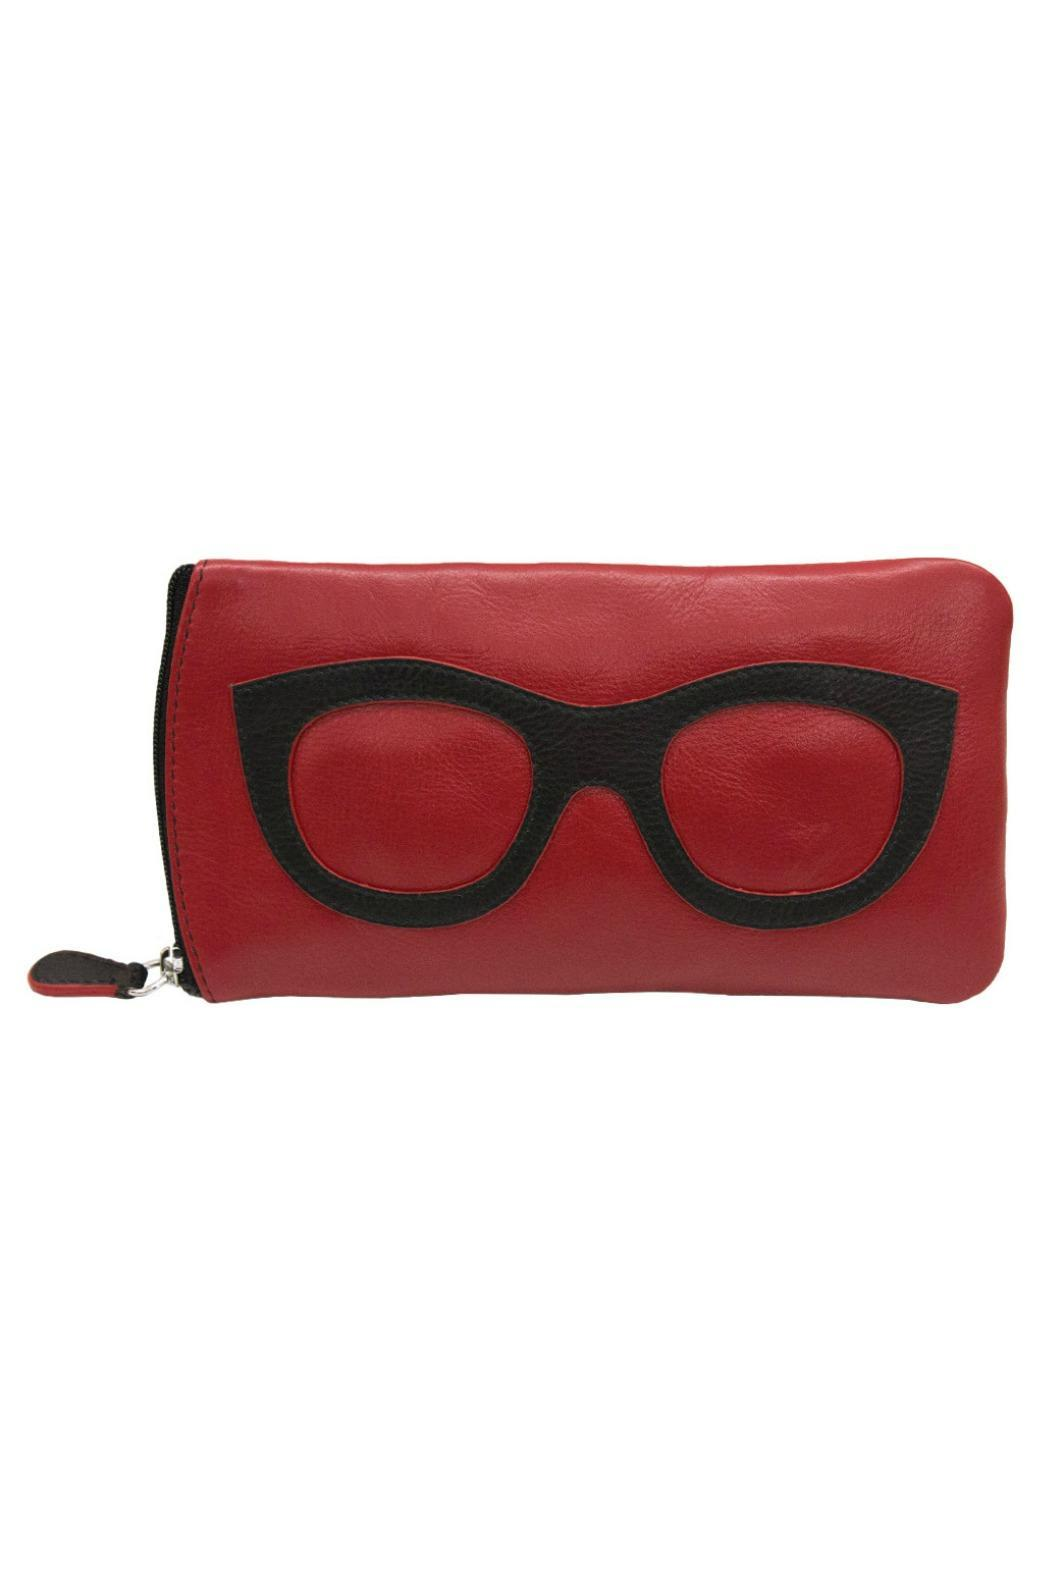 ili world Leather Eyeglass Case - Main Image